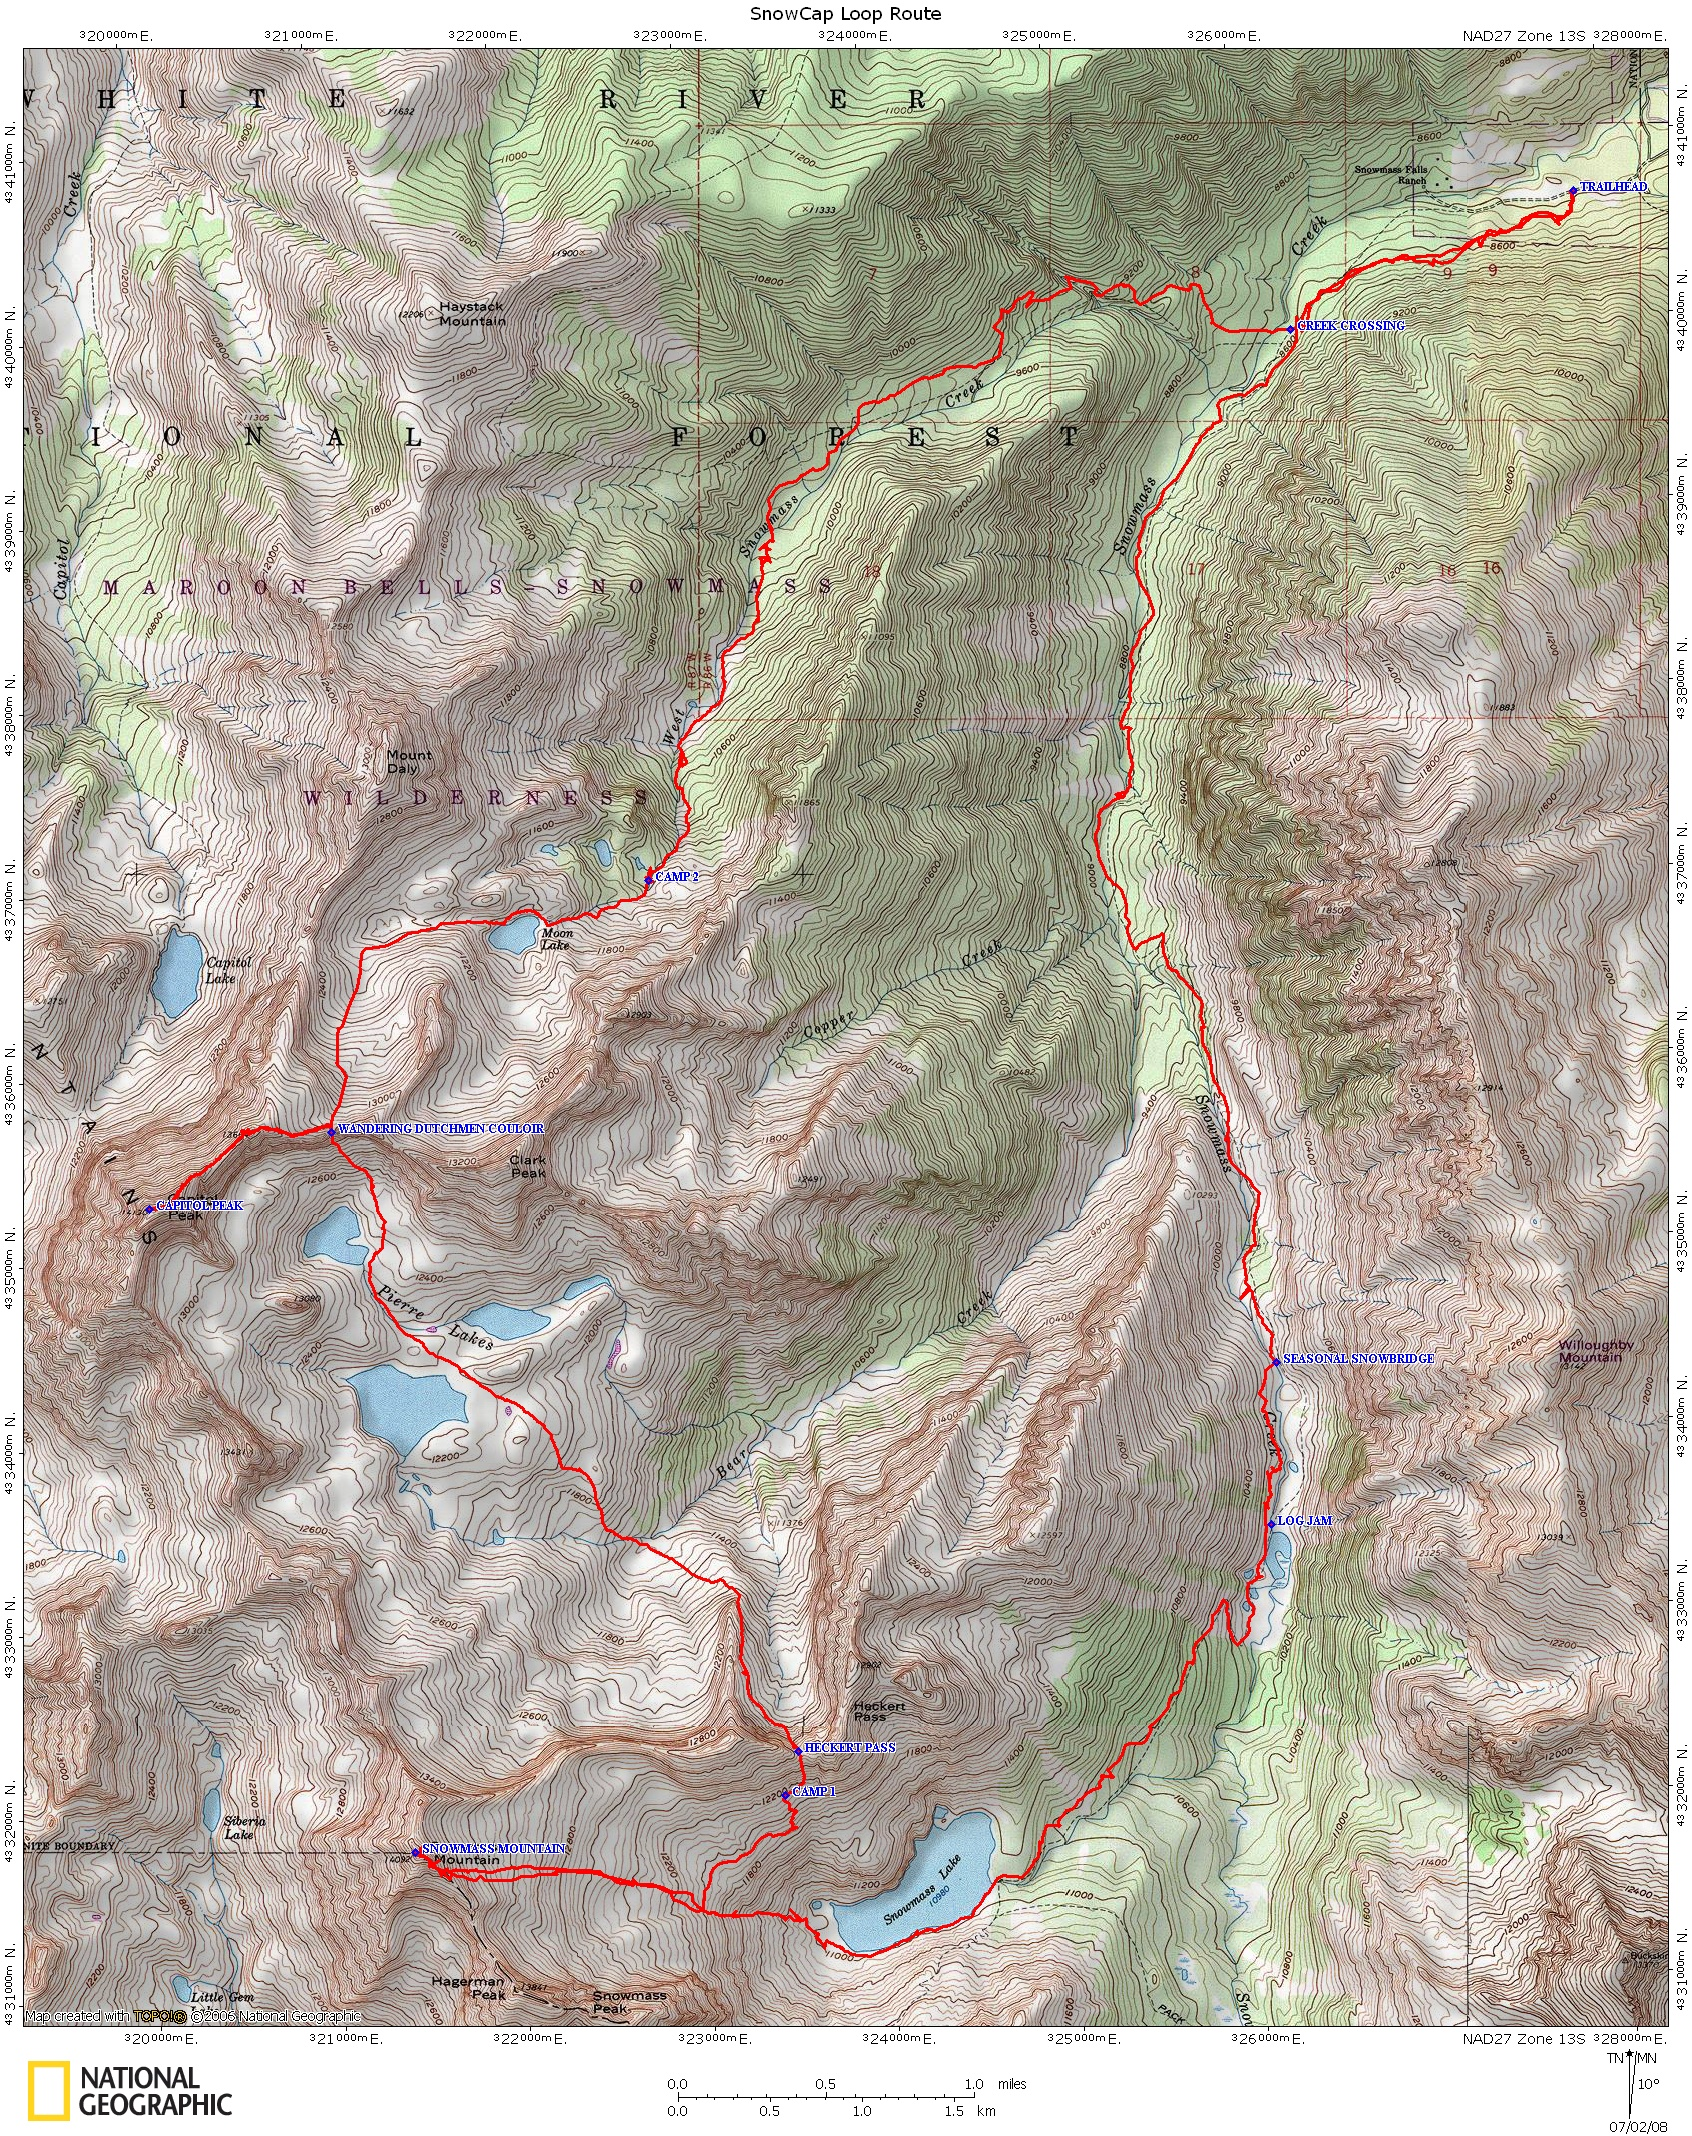 The SnowCap Loop (Combination of Snowmass Mountain and Capitol Peak)